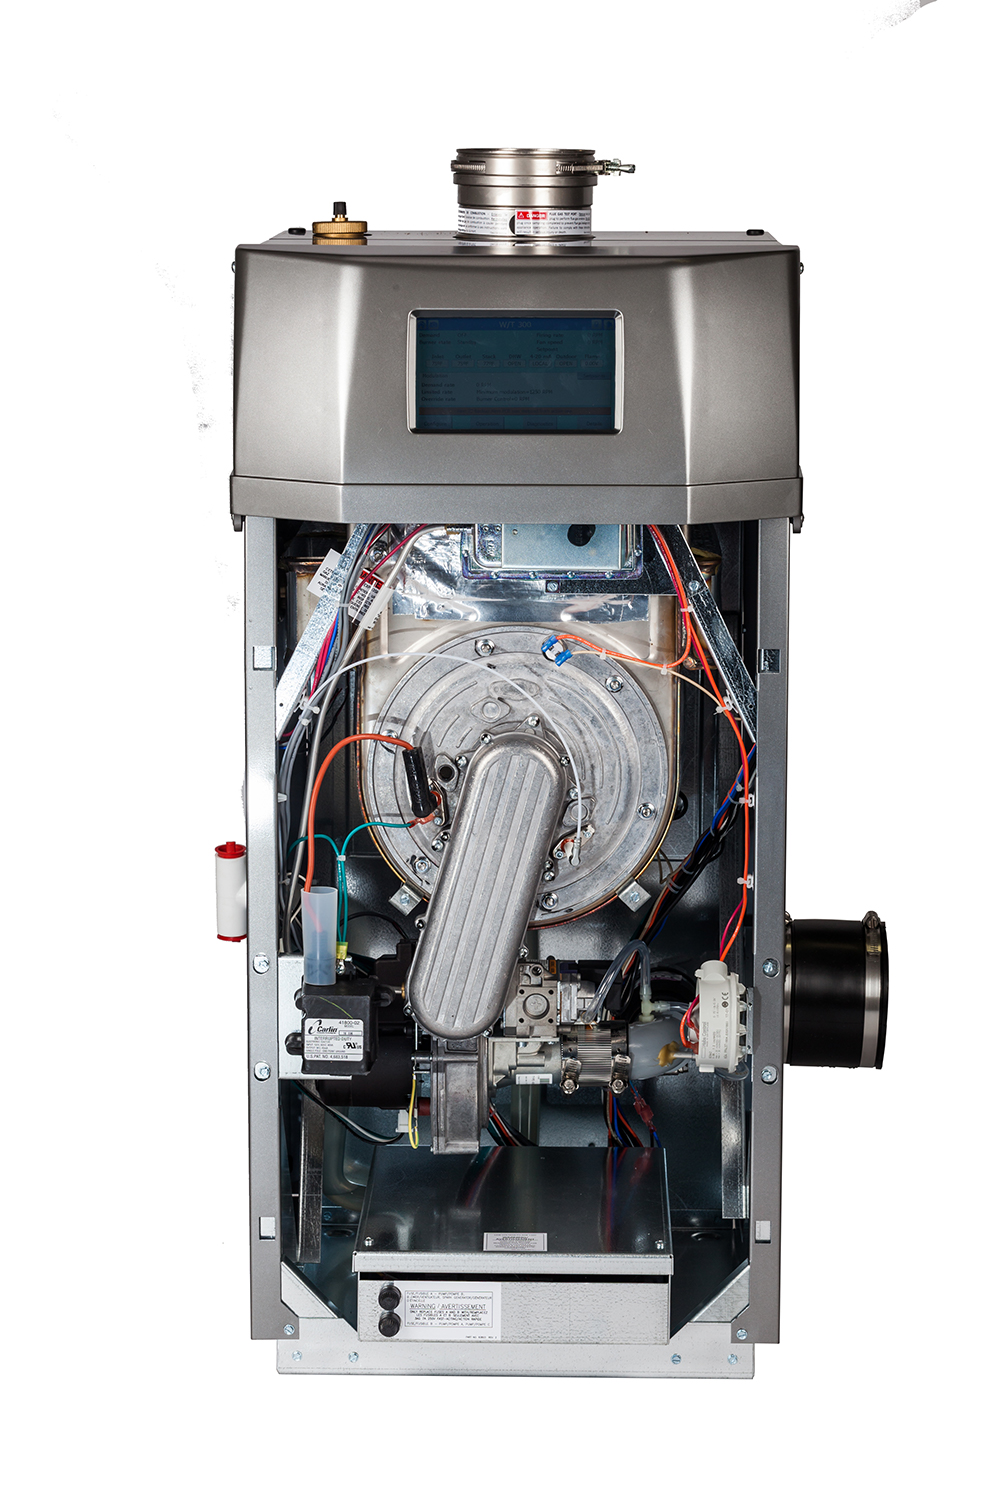 NTI Lx Series Boiler with Open Cover